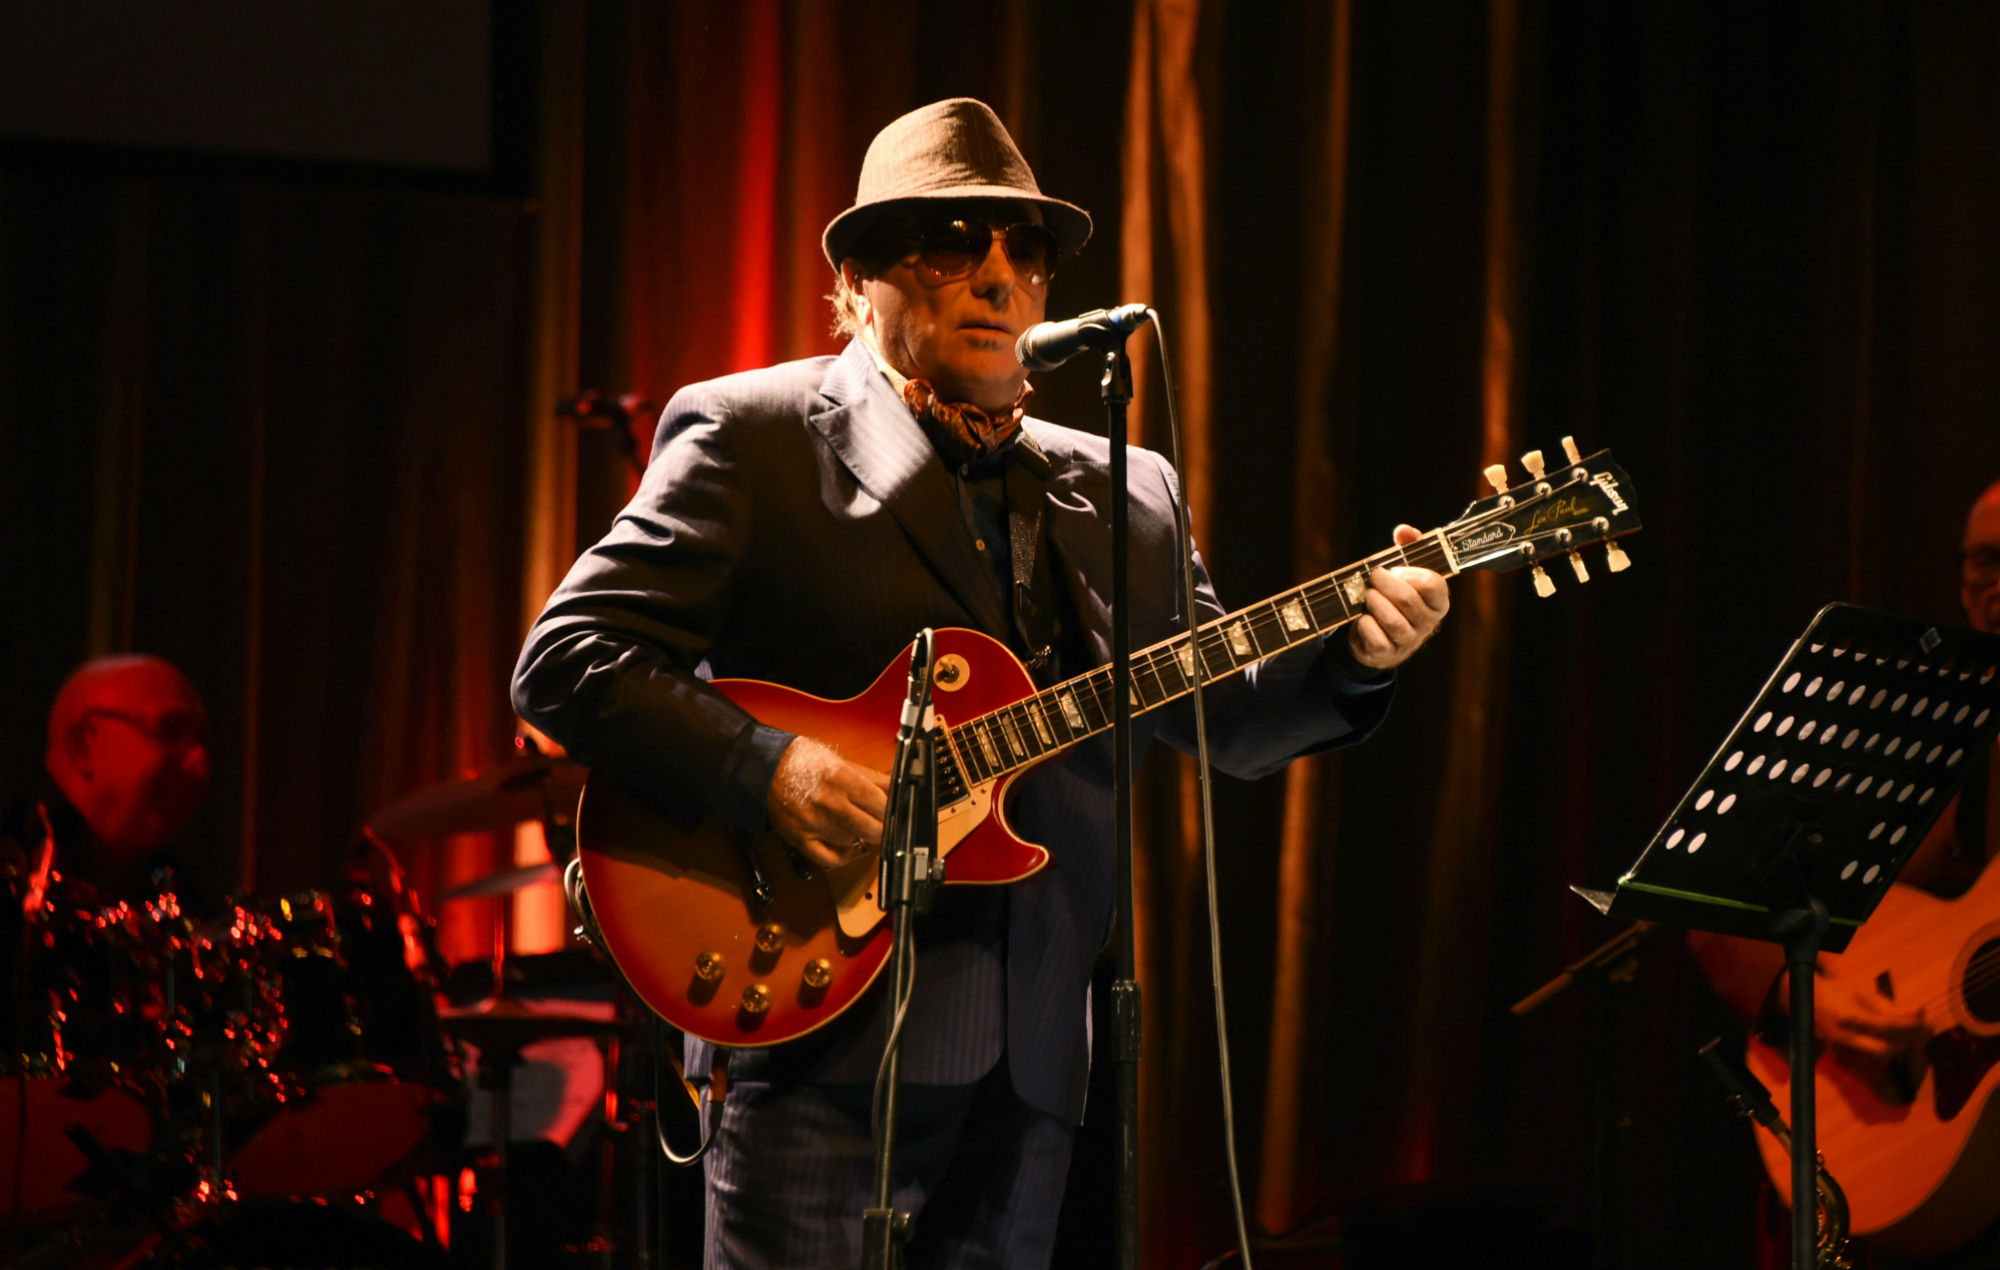 Van Morrison to play two socially-distanced gigs in London this autumn